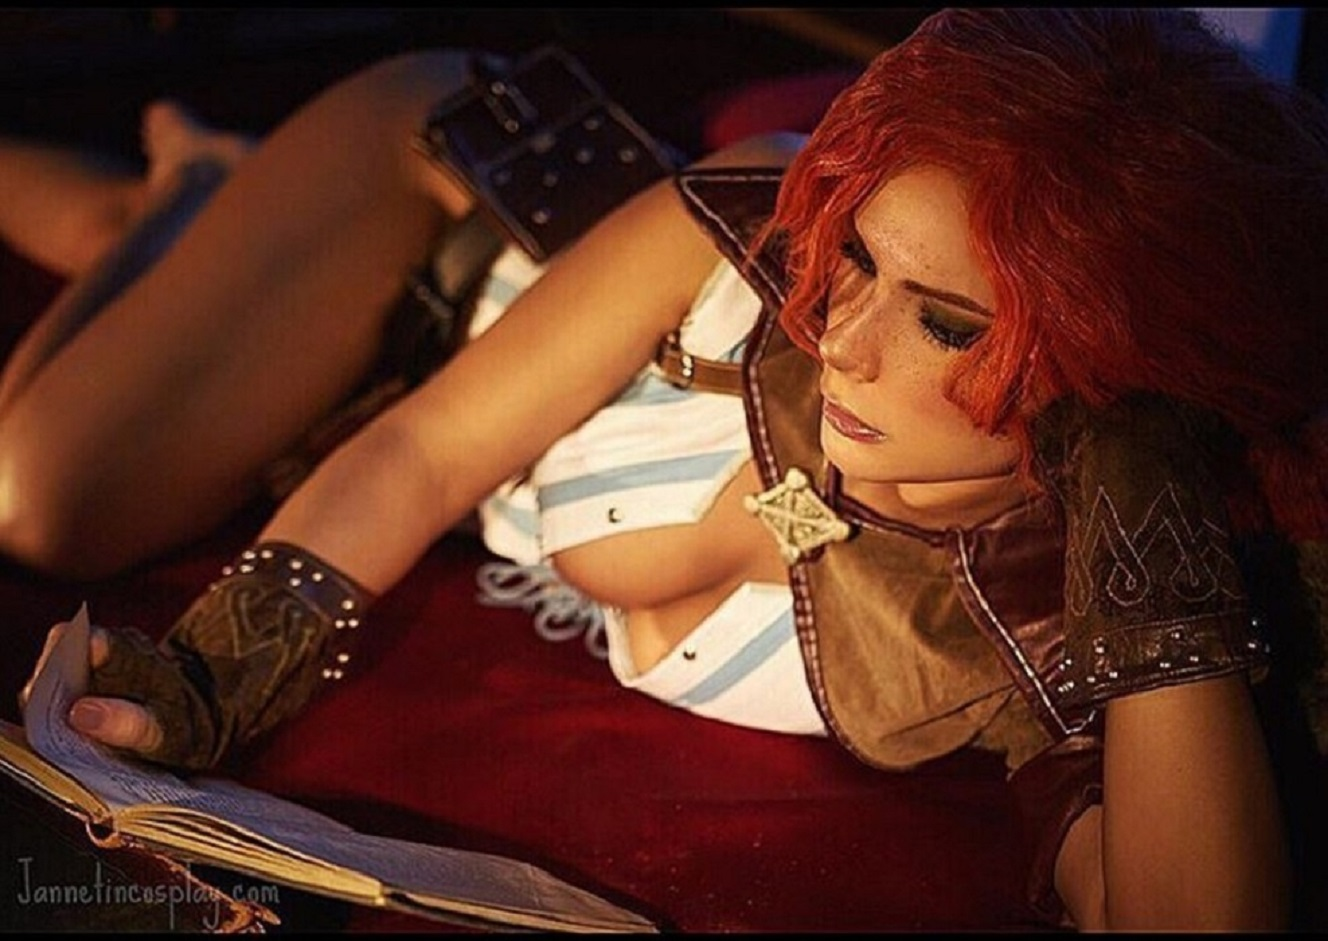 Triss merigold cosplay adult pic